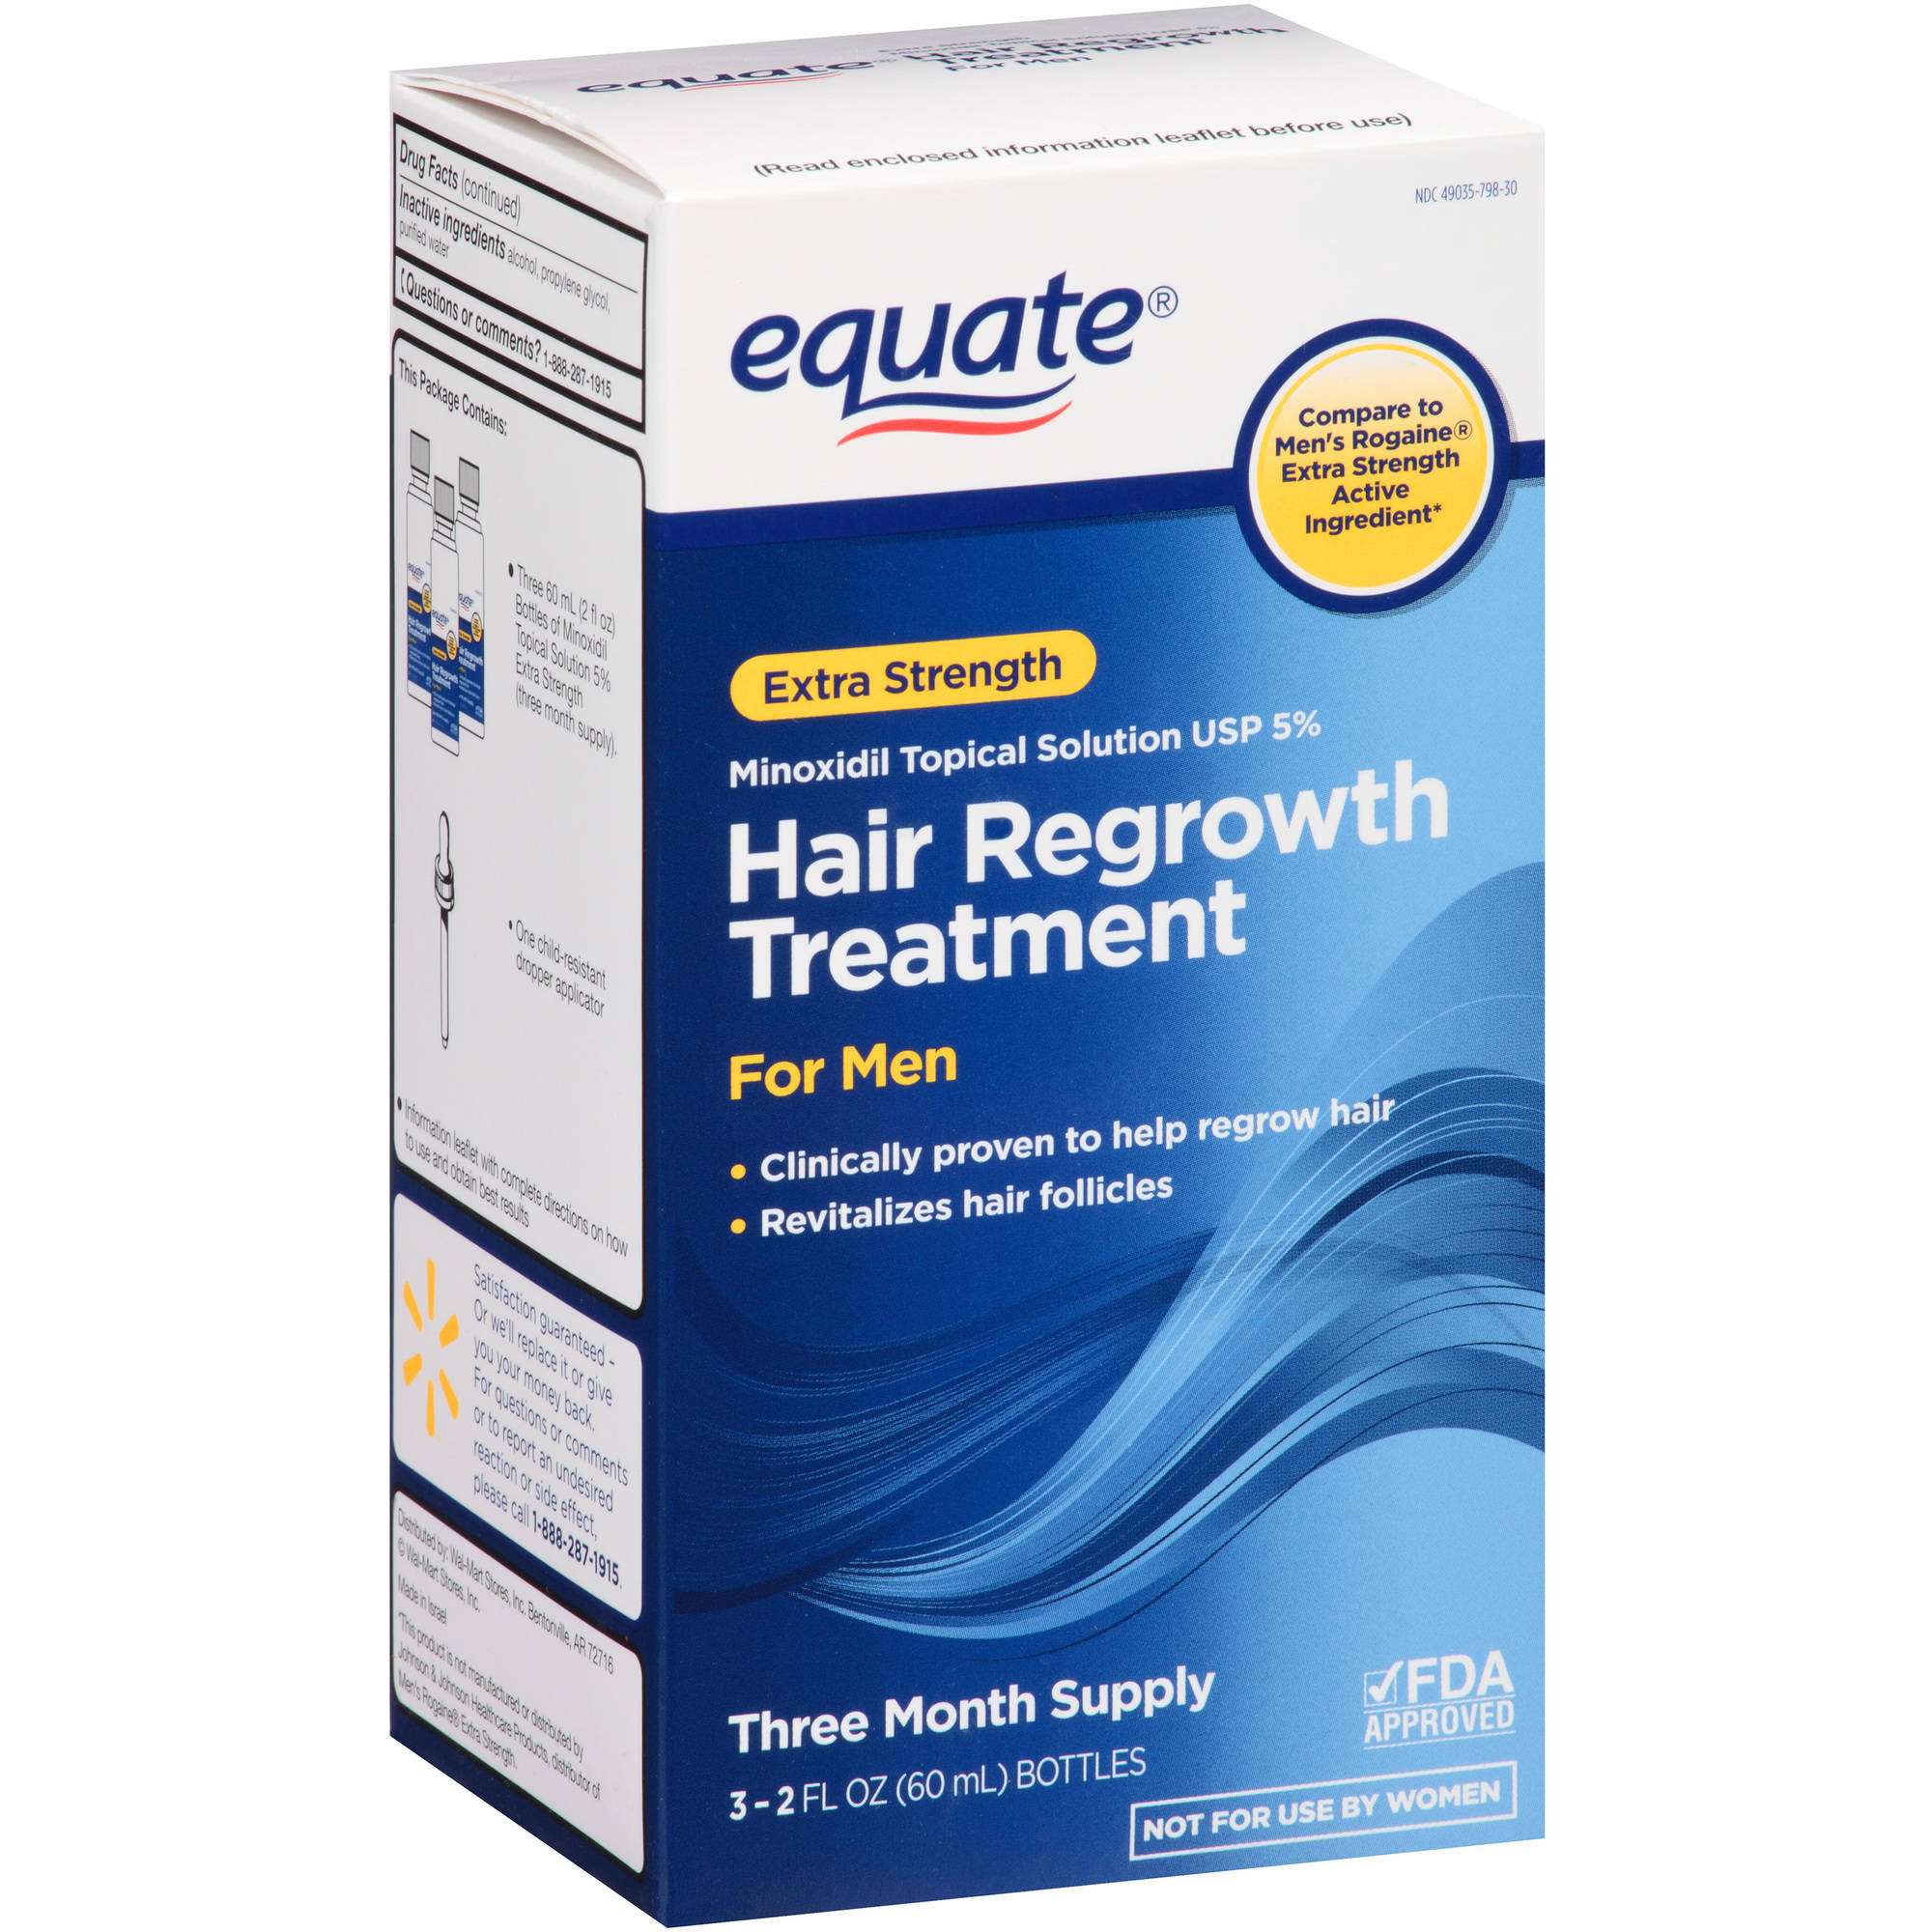 Equate Extra Strength Hair Regrowth Topical Solution for Men, 3ct